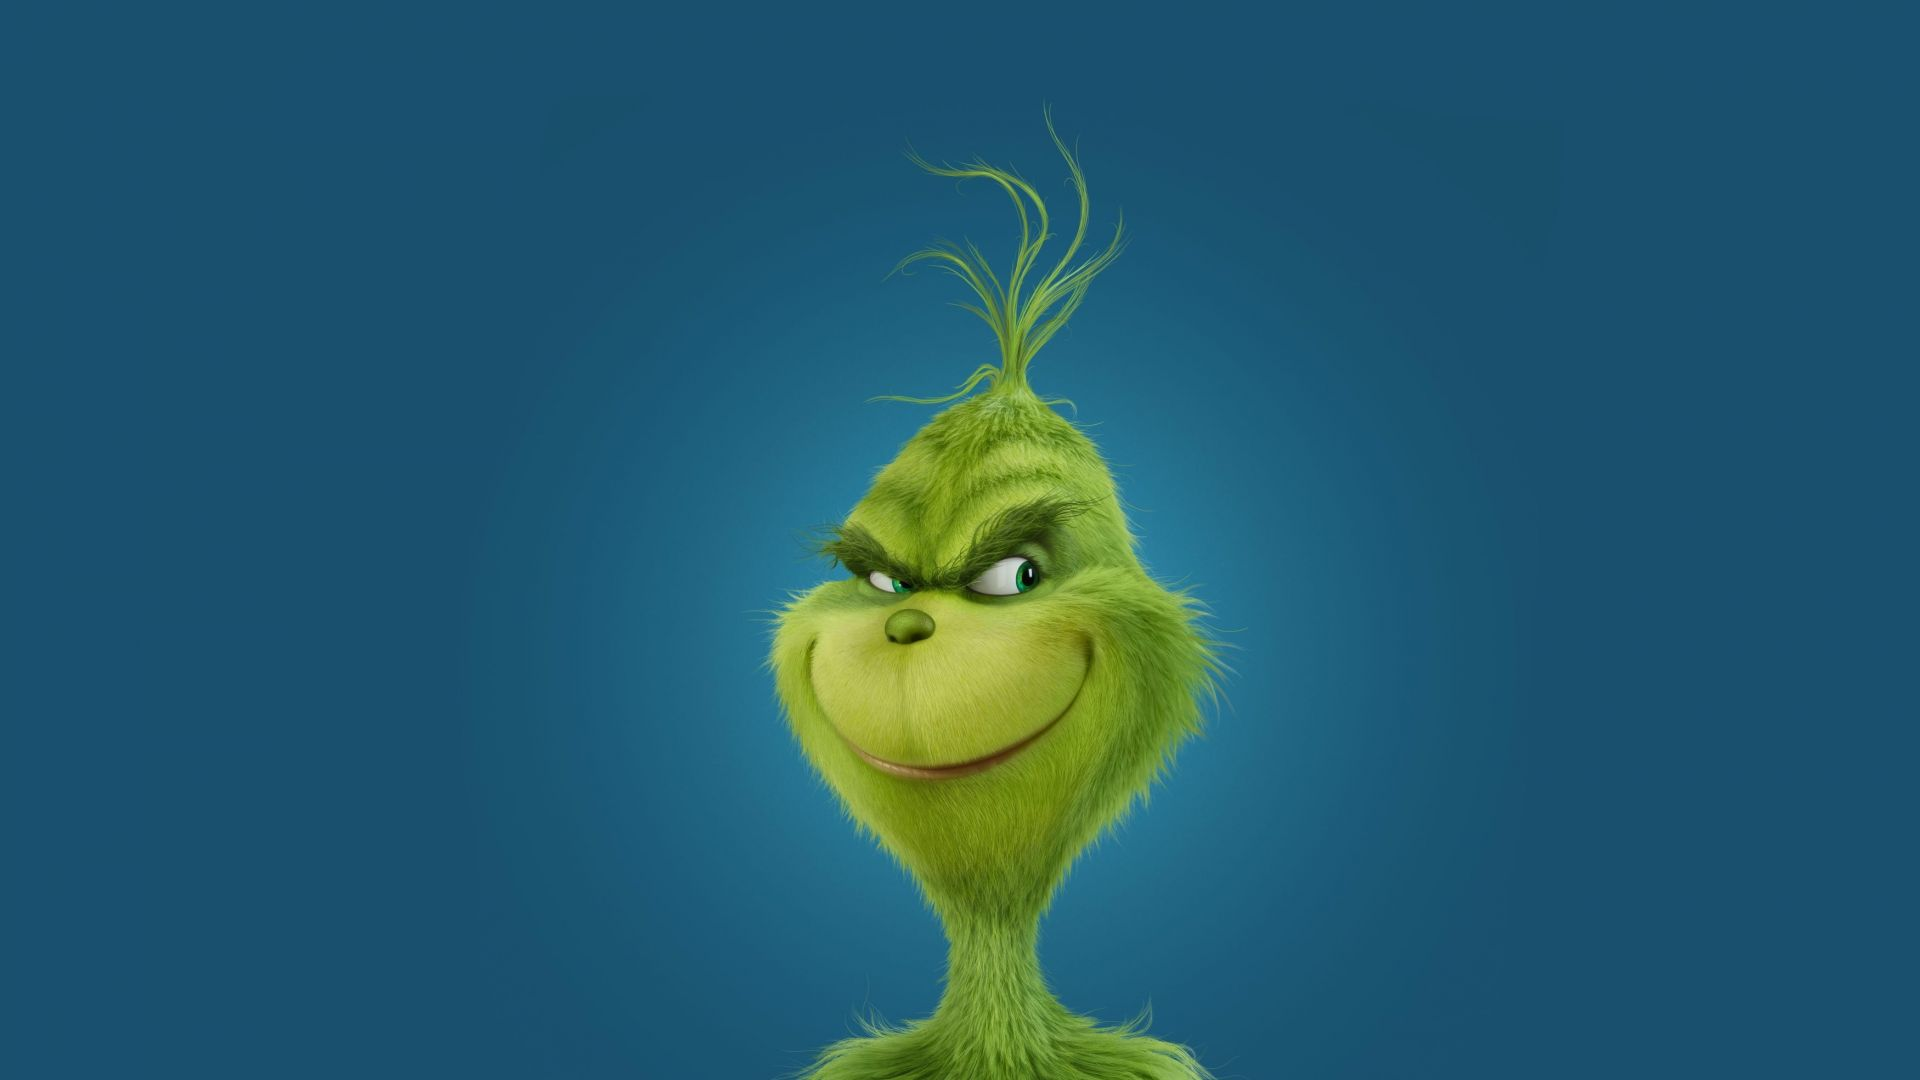 How the Grinch Stole Christmas, Grinch, green (horizontal)